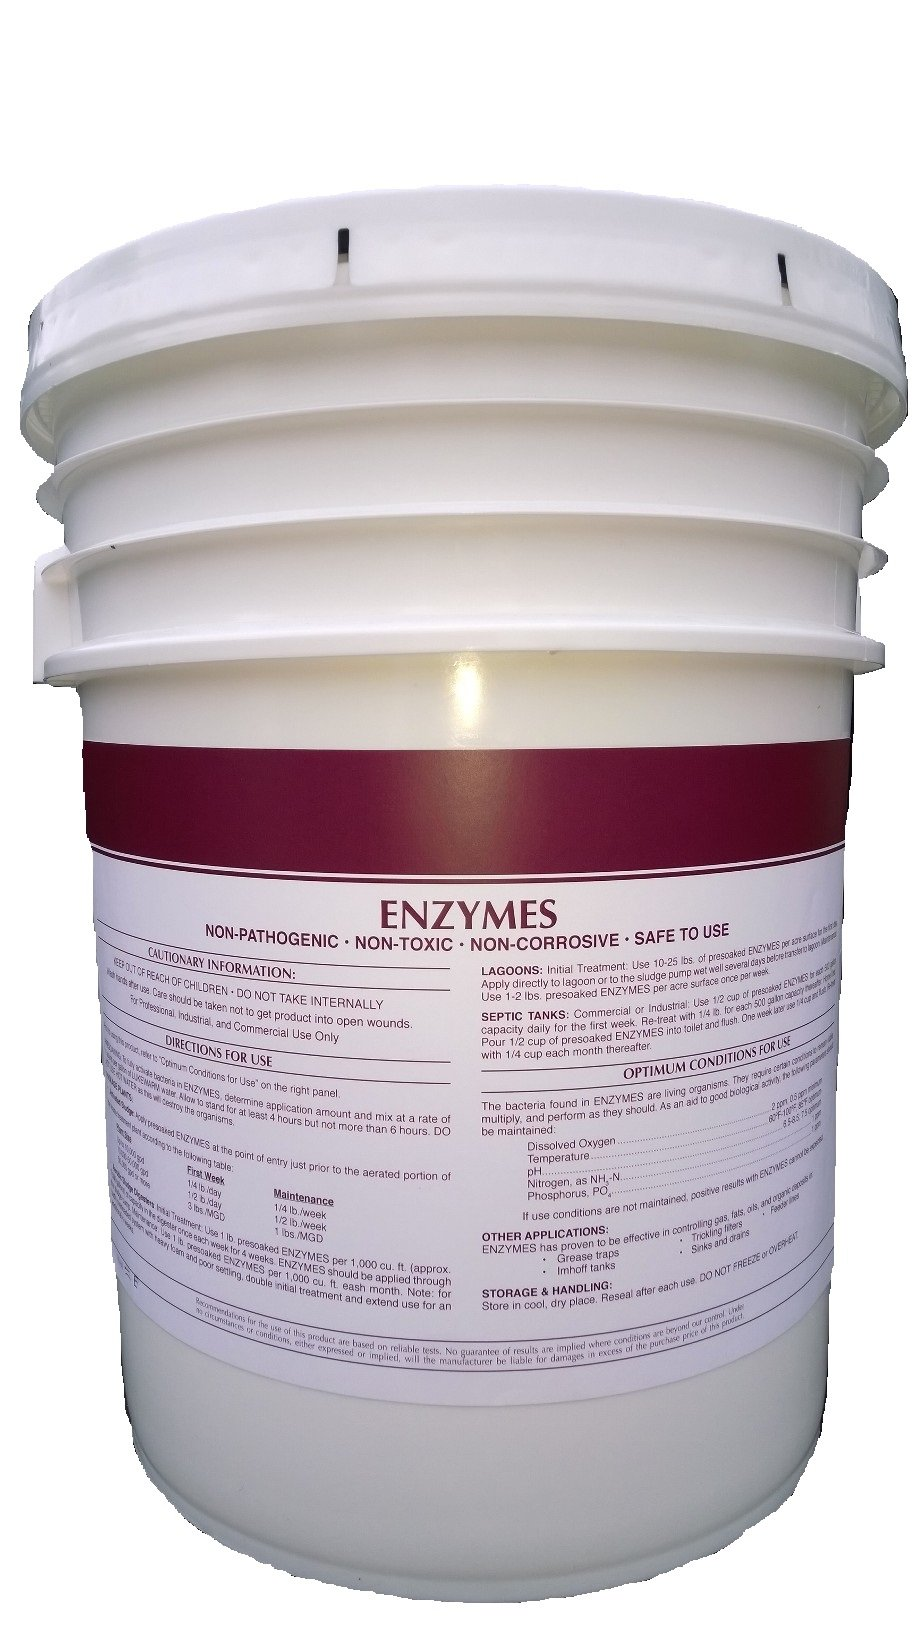 Patriot Chemical Sales 10 Pounds Enzymes Powdered Septic Tank Treatment Bacterial Crystals Industrial Strength